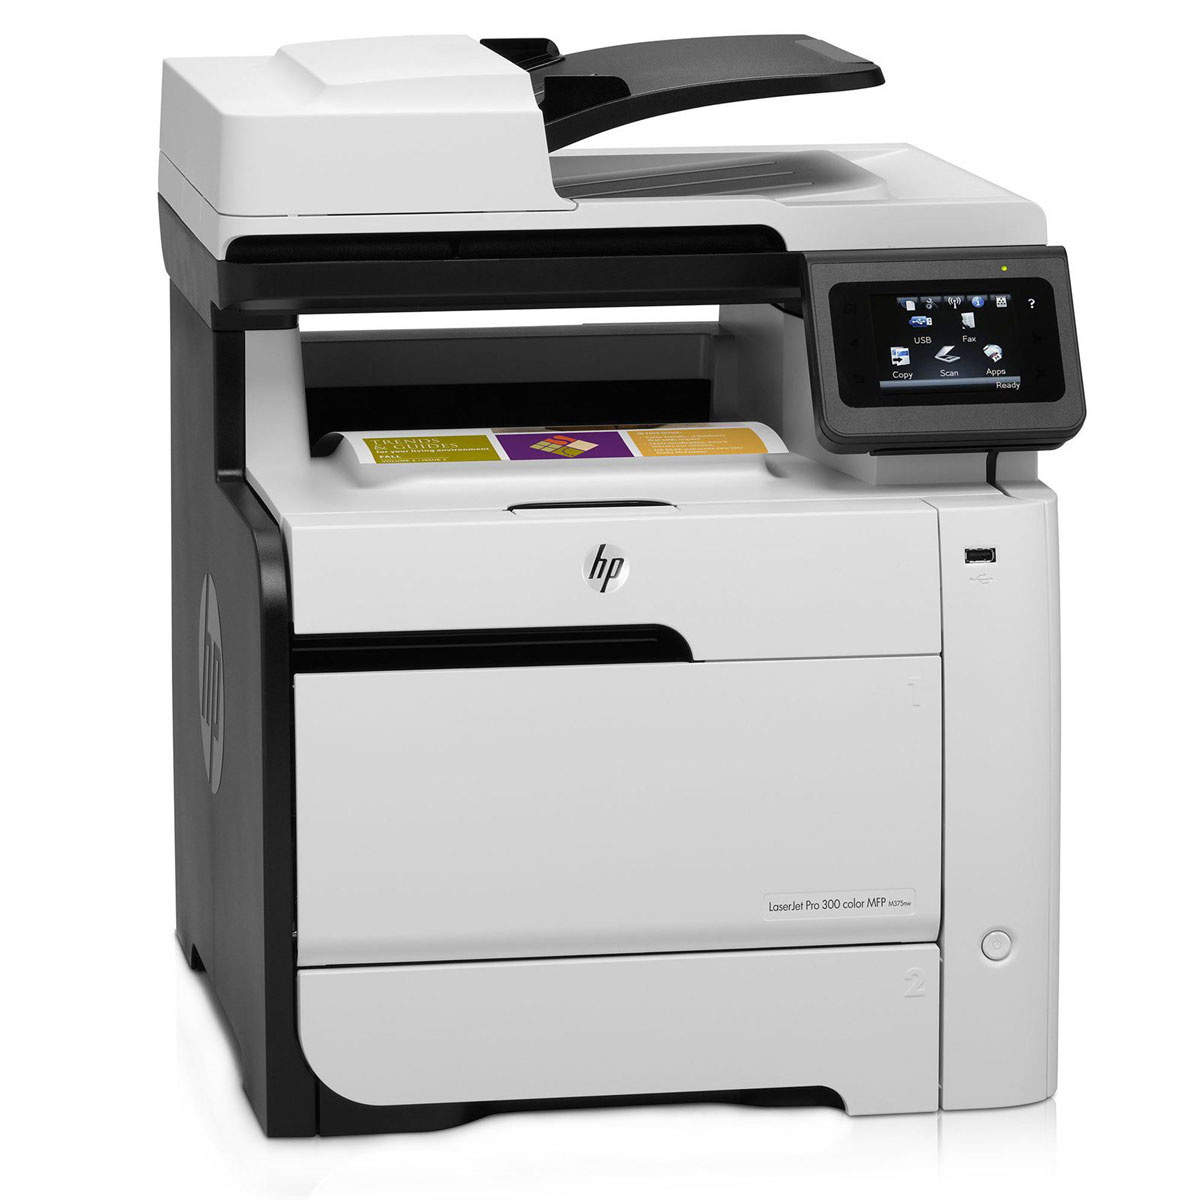 hp laserjet pro 300 color mfp m375nw ce903a ce903a b19. Black Bedroom Furniture Sets. Home Design Ideas